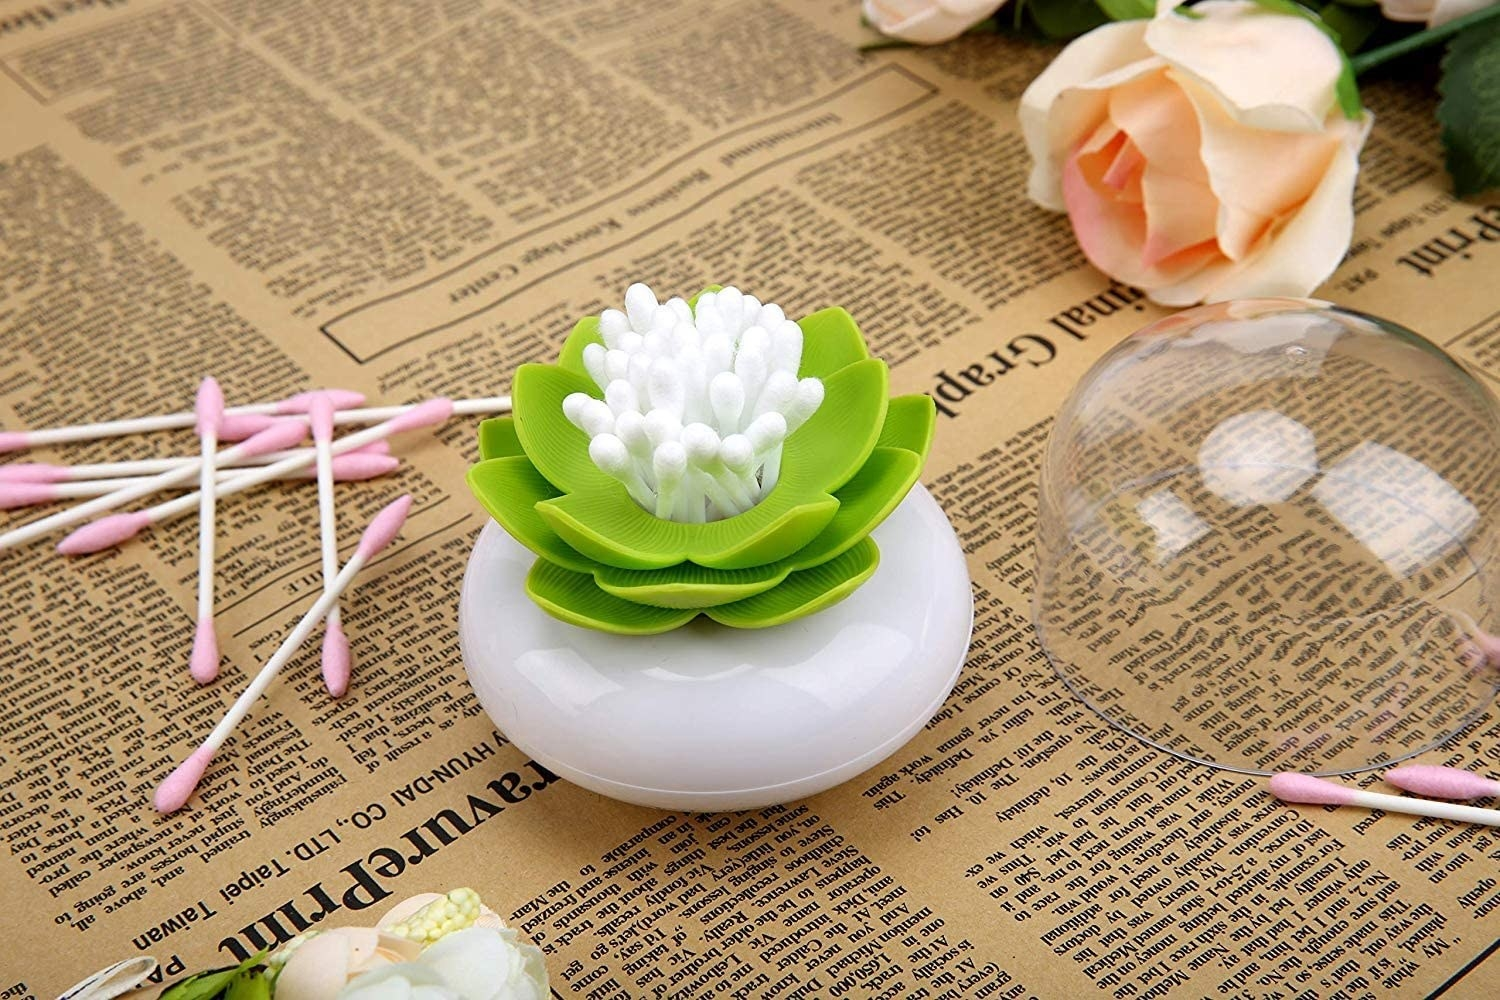 Flower-shaped cotton swab holder filled with cotton swabs